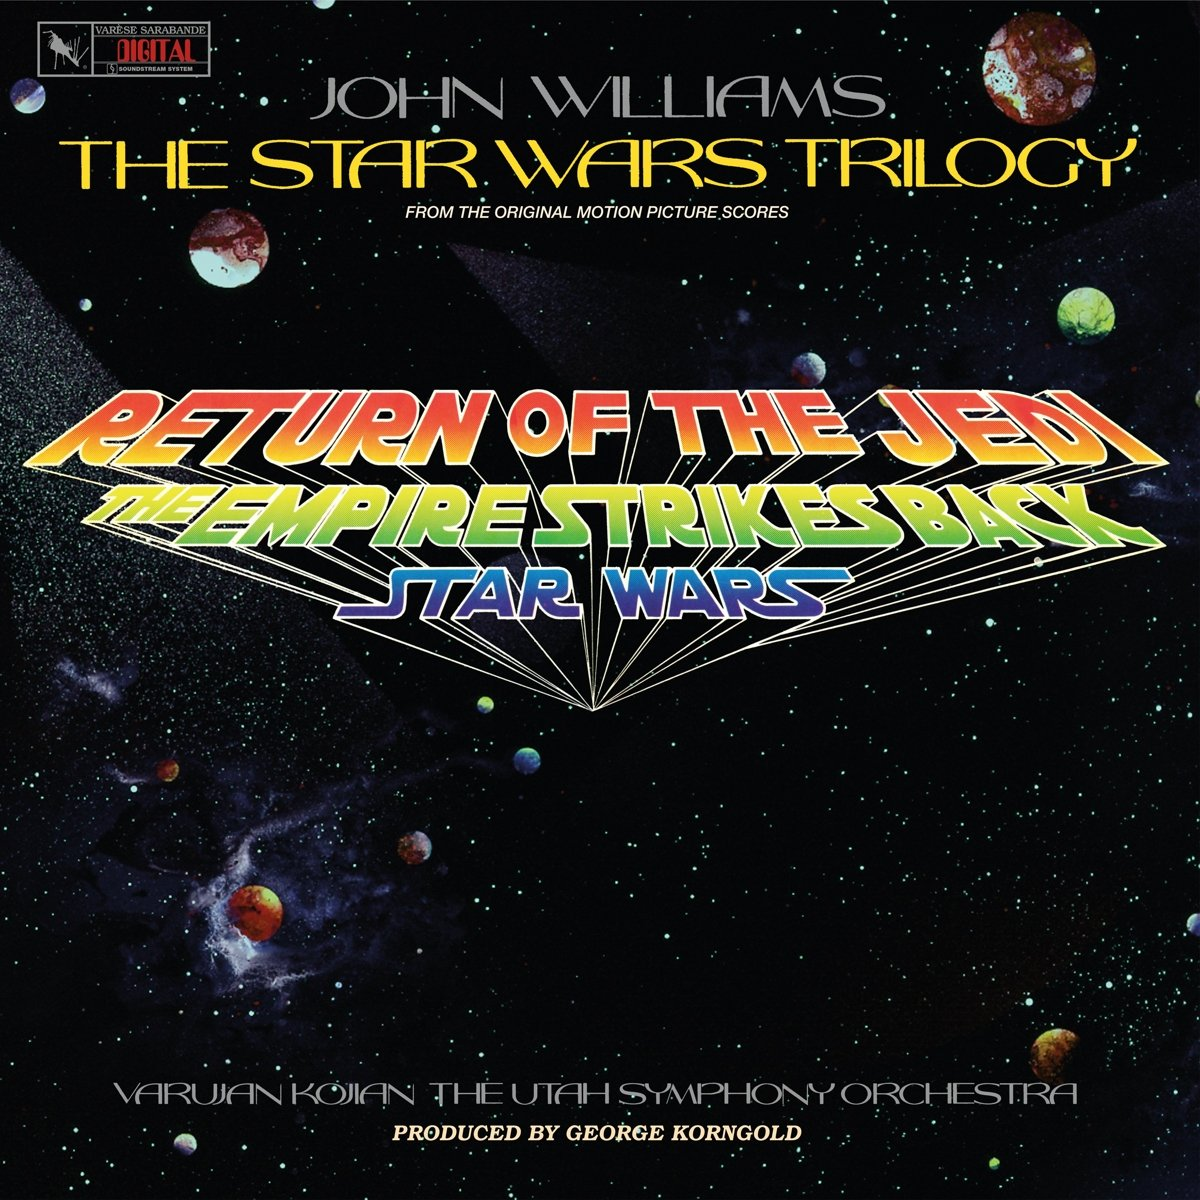 Vinilo : John Williams - Star Wars Trilogy (utah Symphony Orchestra) (original Soundtrack) (LP Vinyl)